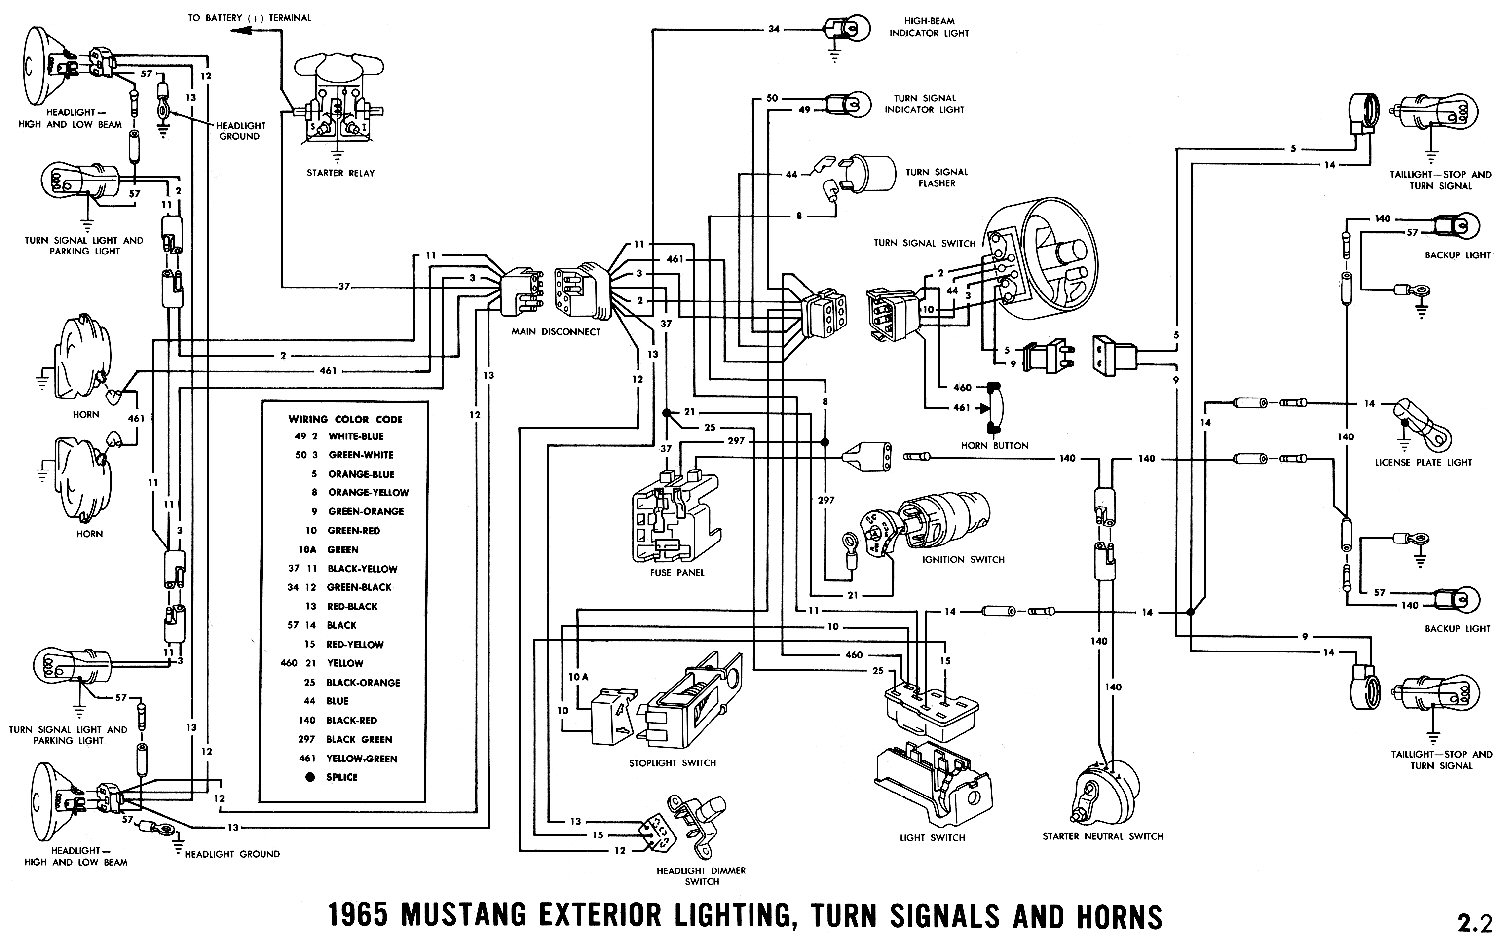 1964 mustang wiring diagram for headlights